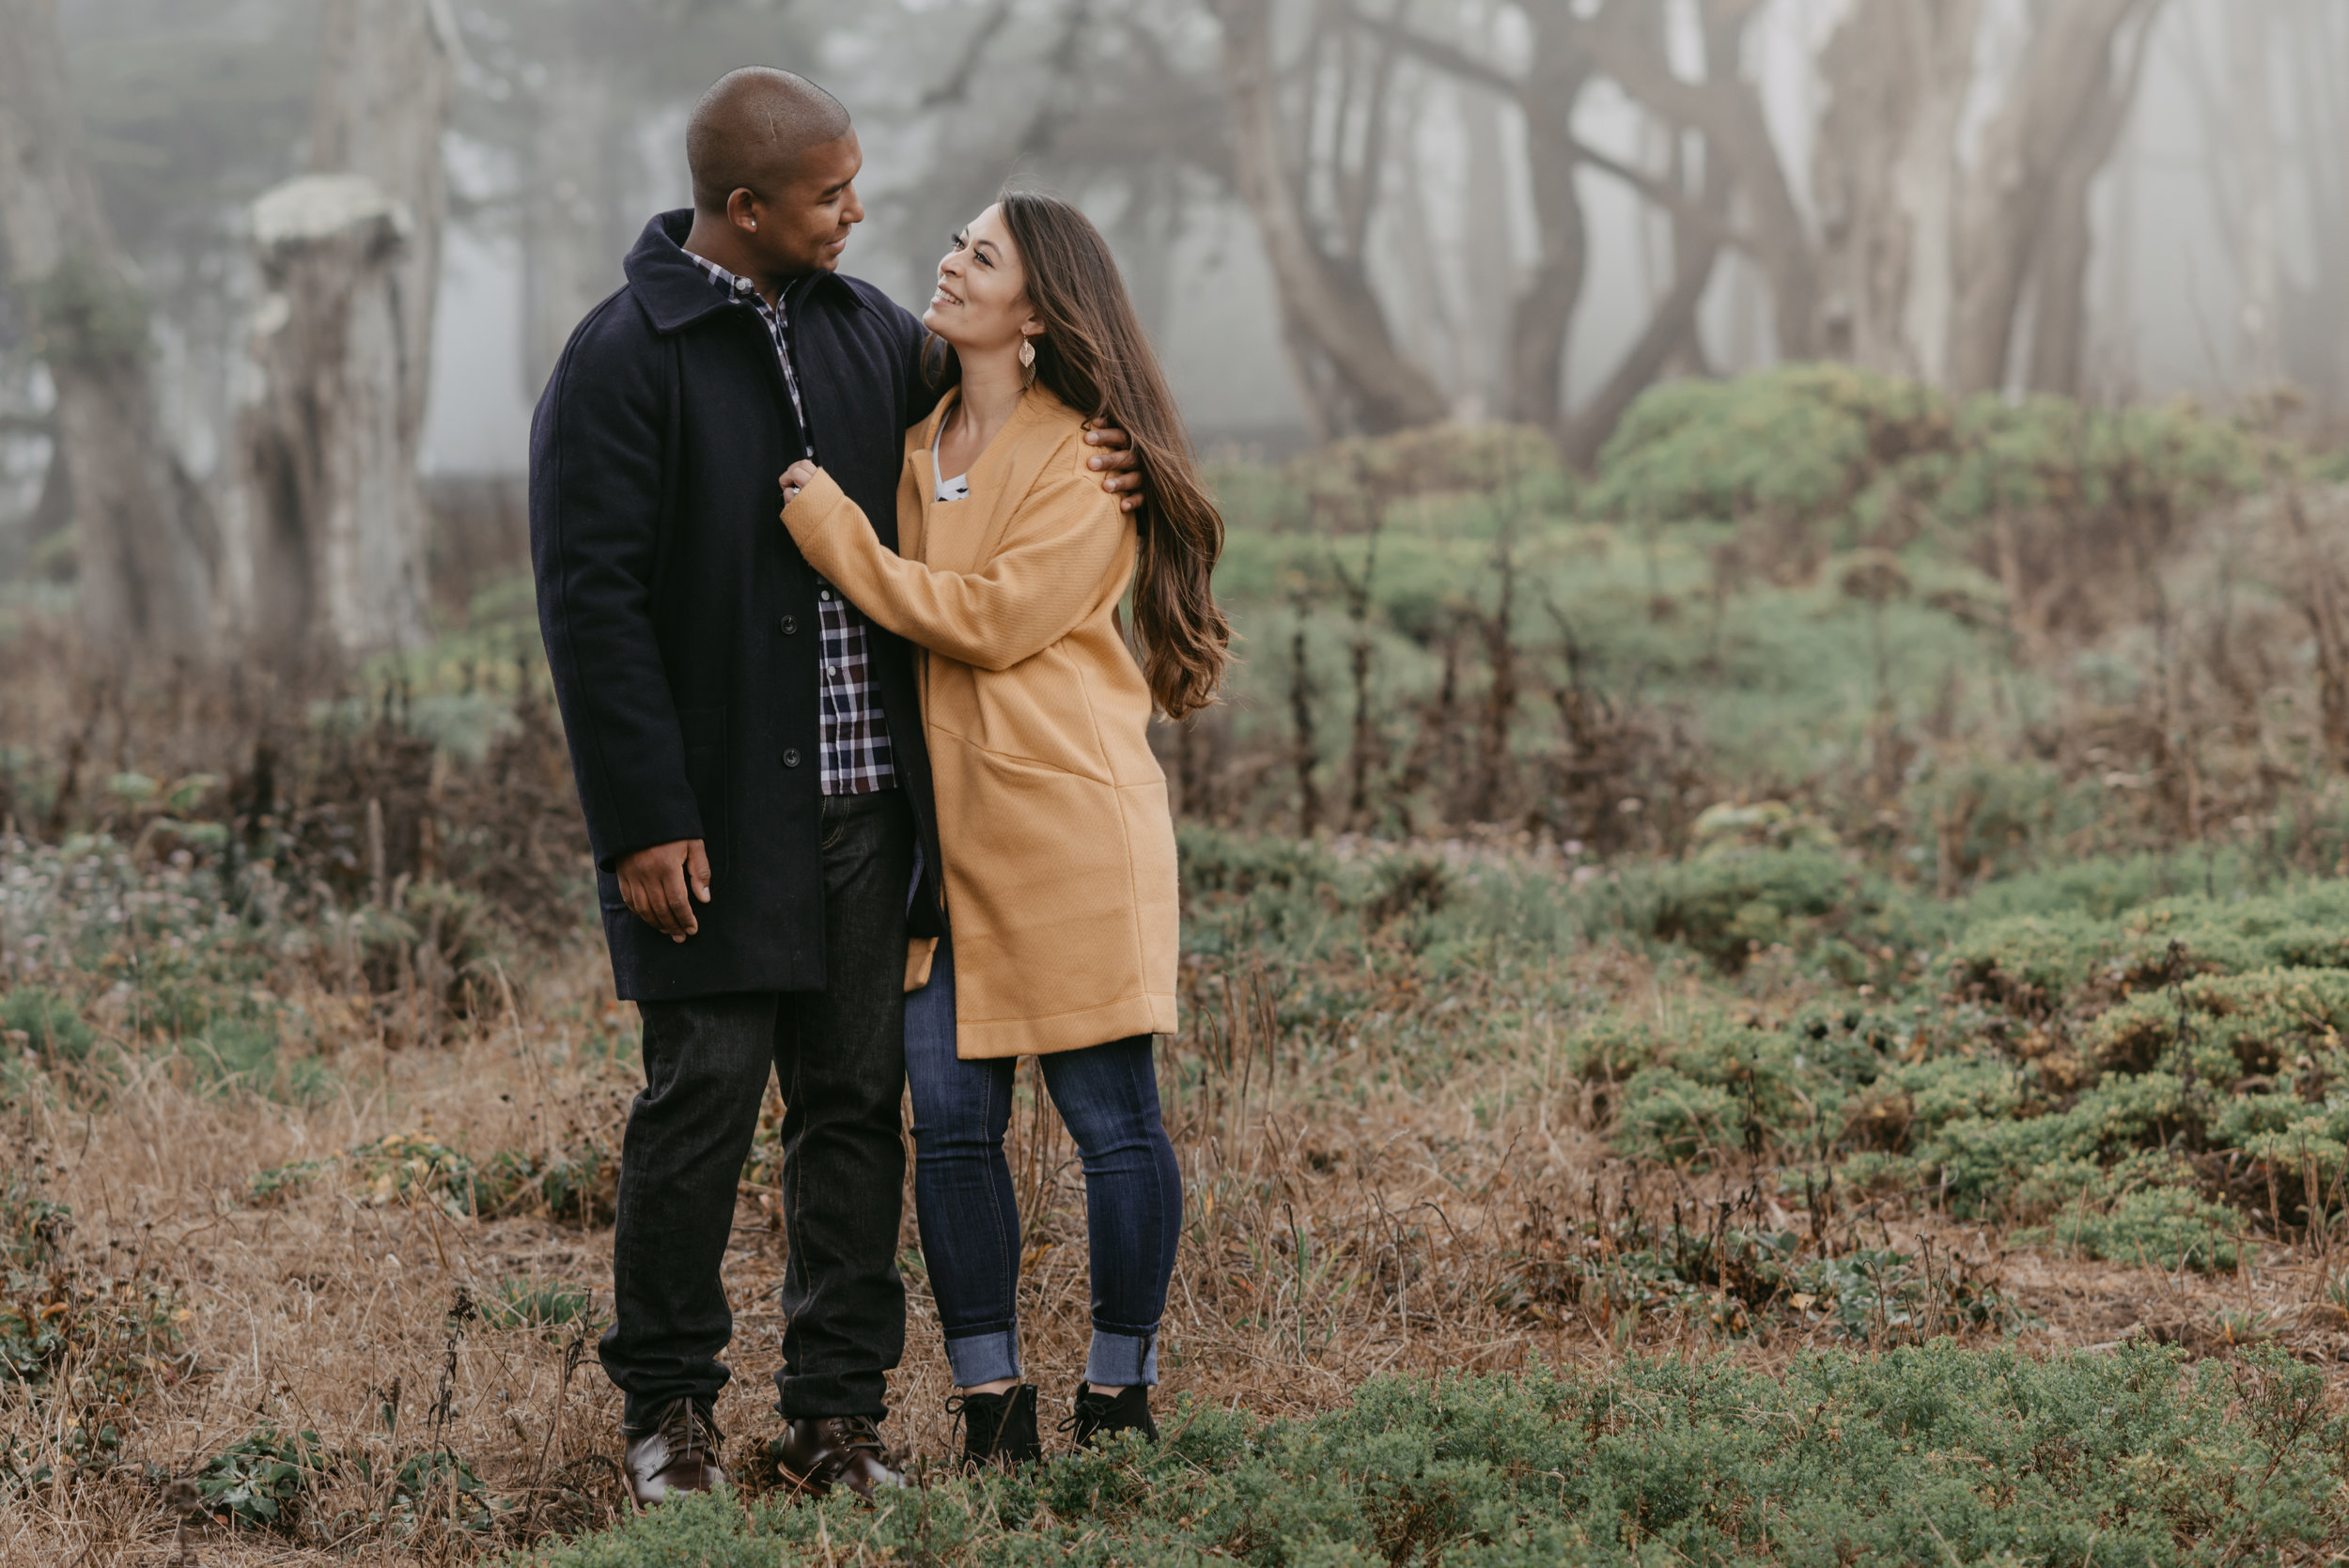 An engaged couple in fall attire grasping one another in a foggy forest.